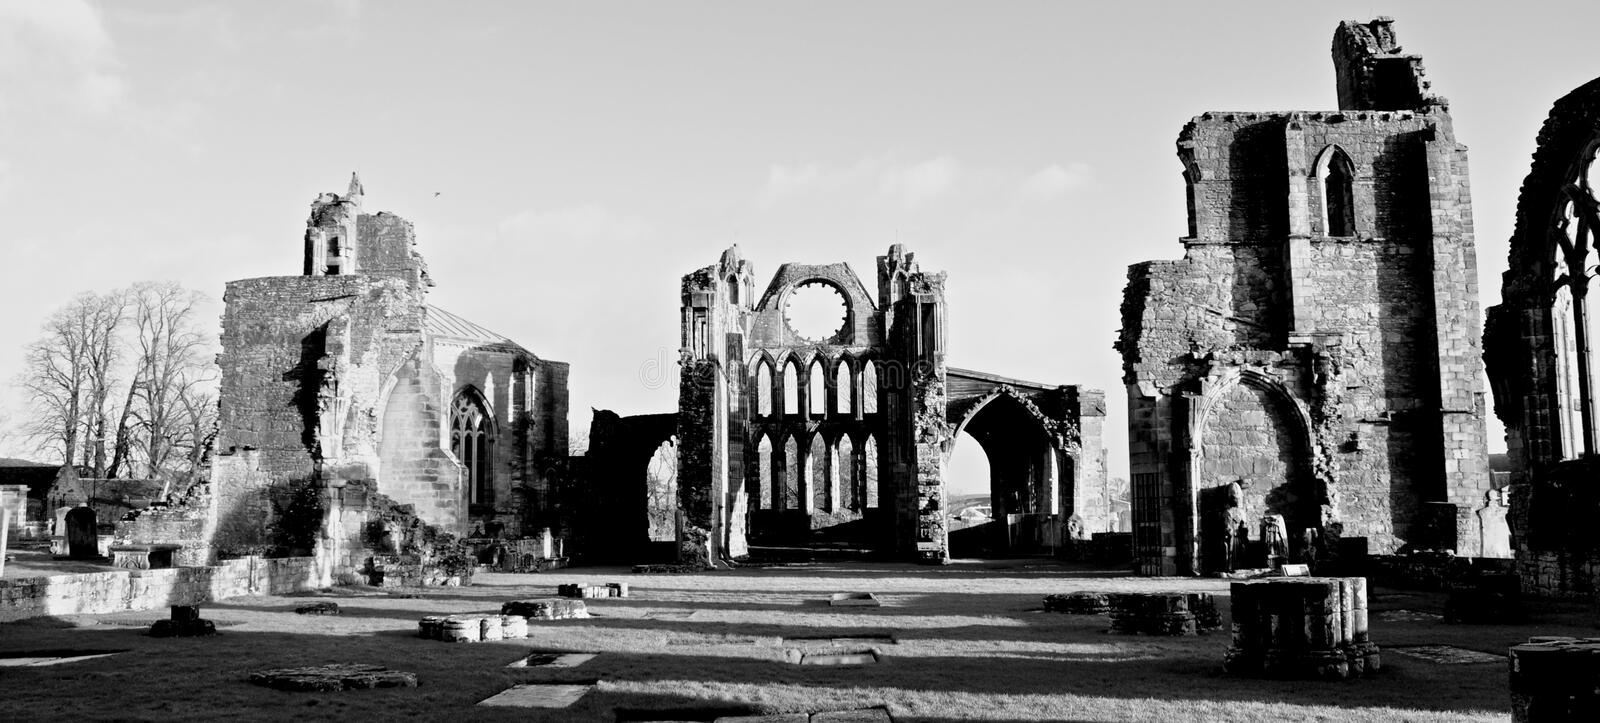 Elgin Cathedral Scotland fotografia de stock